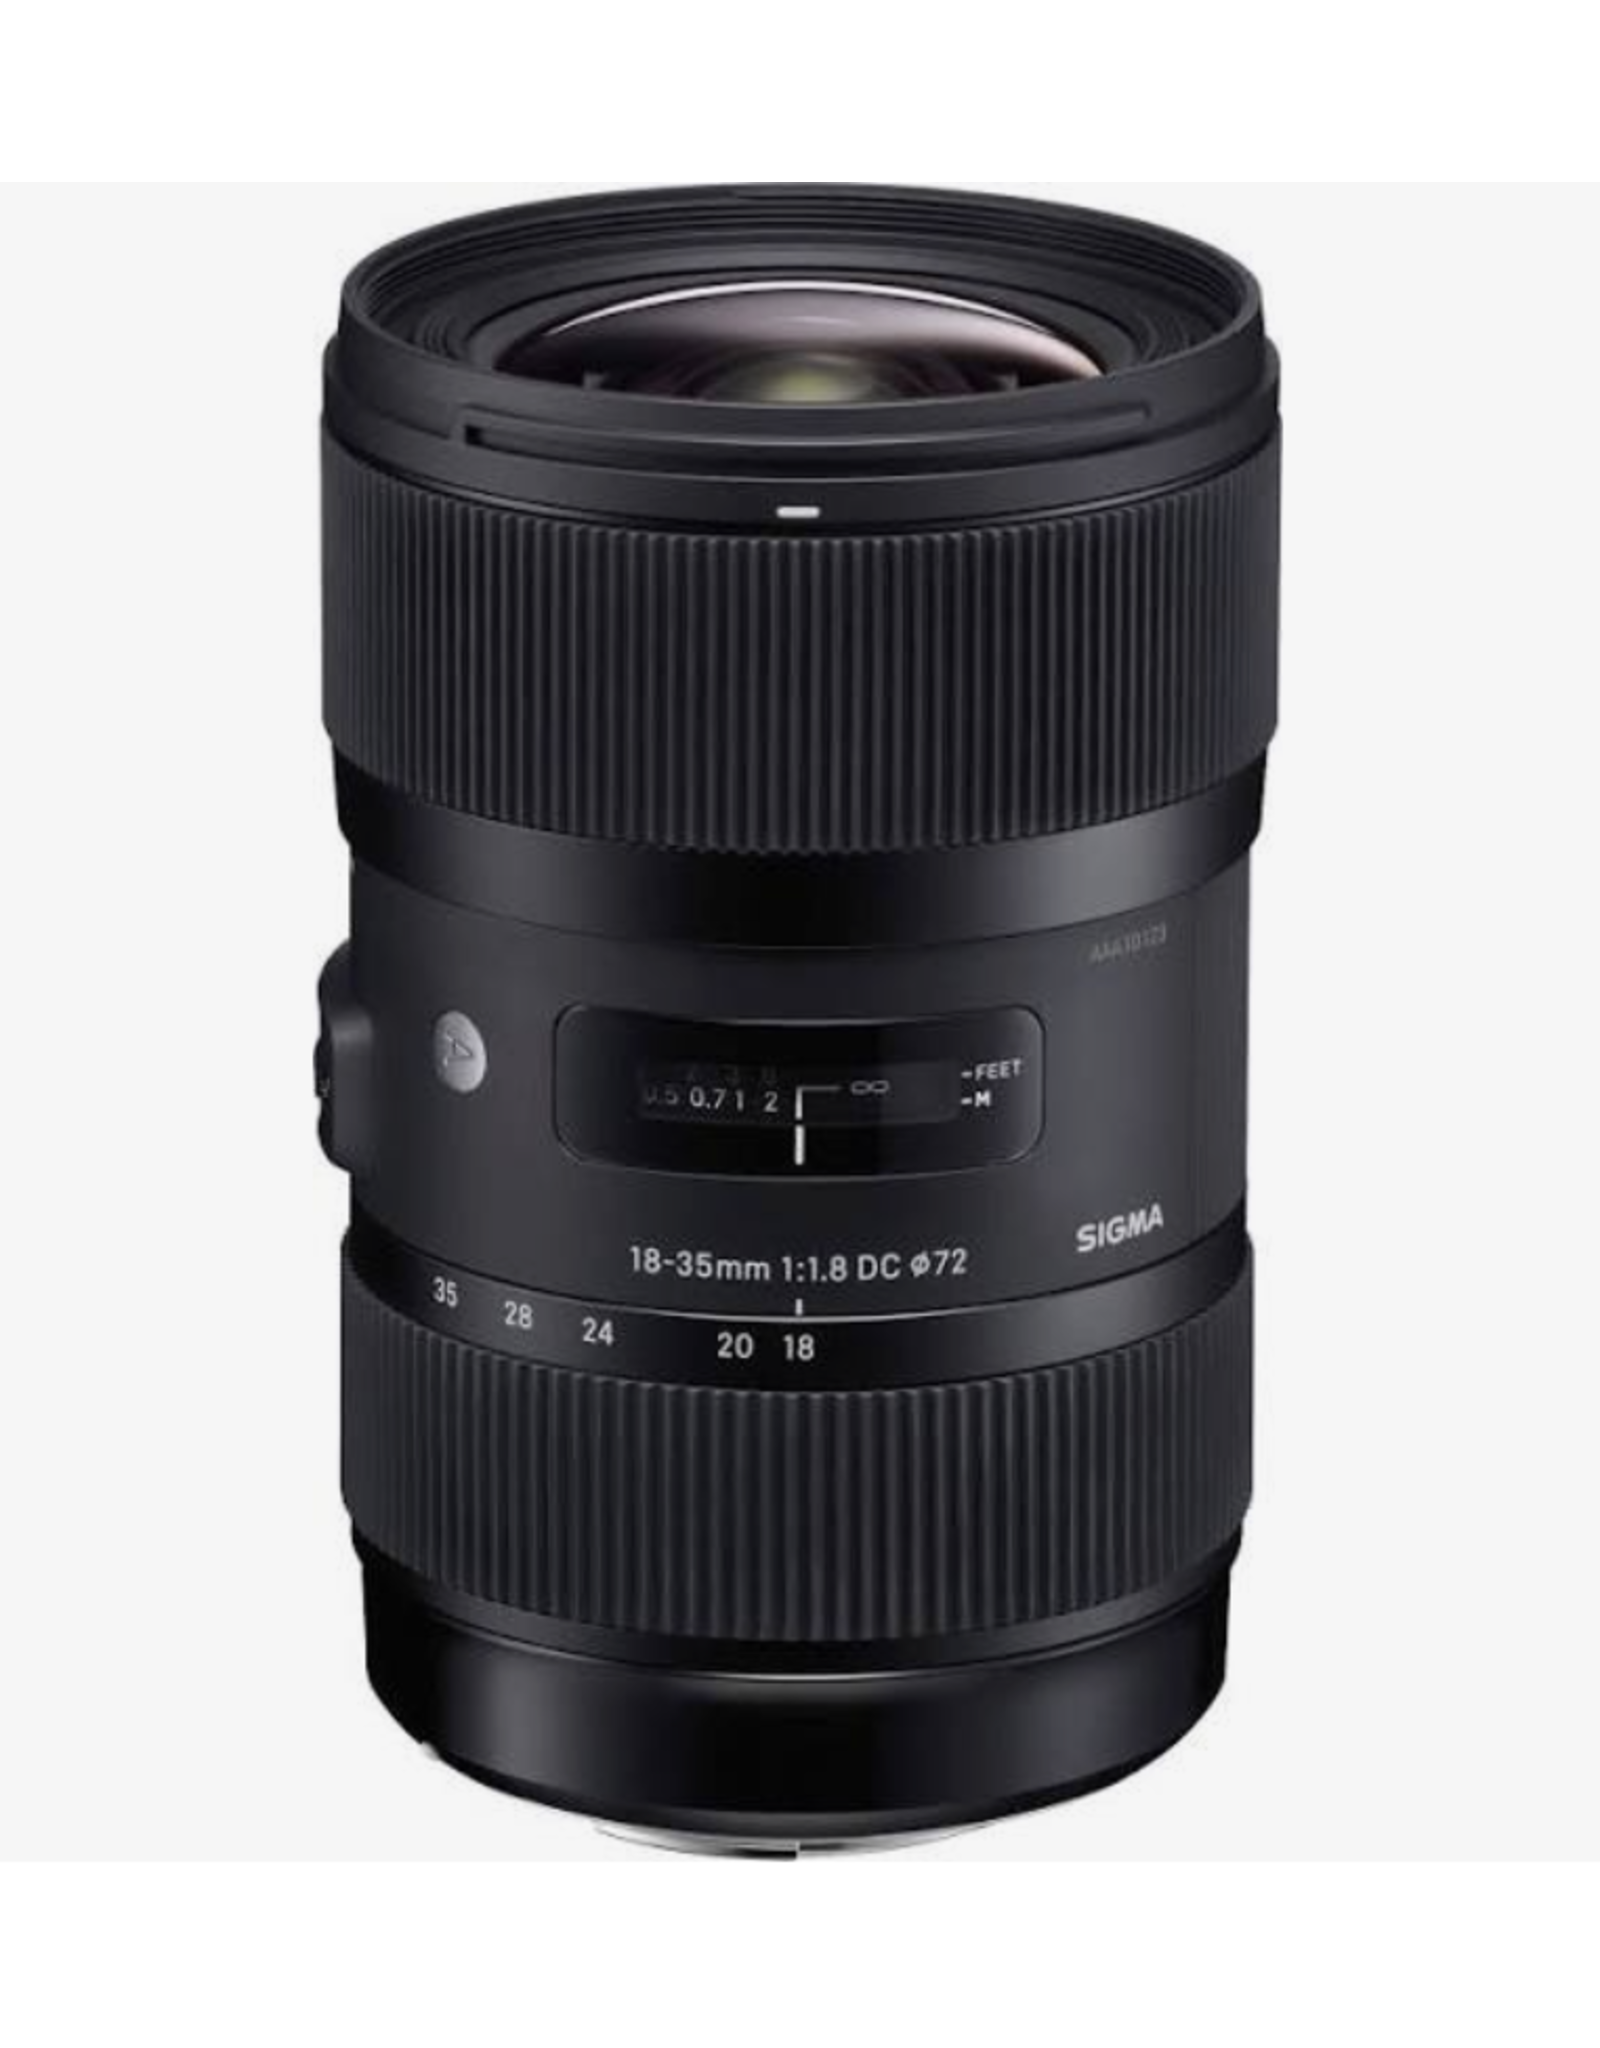 Sigma SIGMA 18-35MM F/1.8 DC HSM ART LENS FOR CANON EF